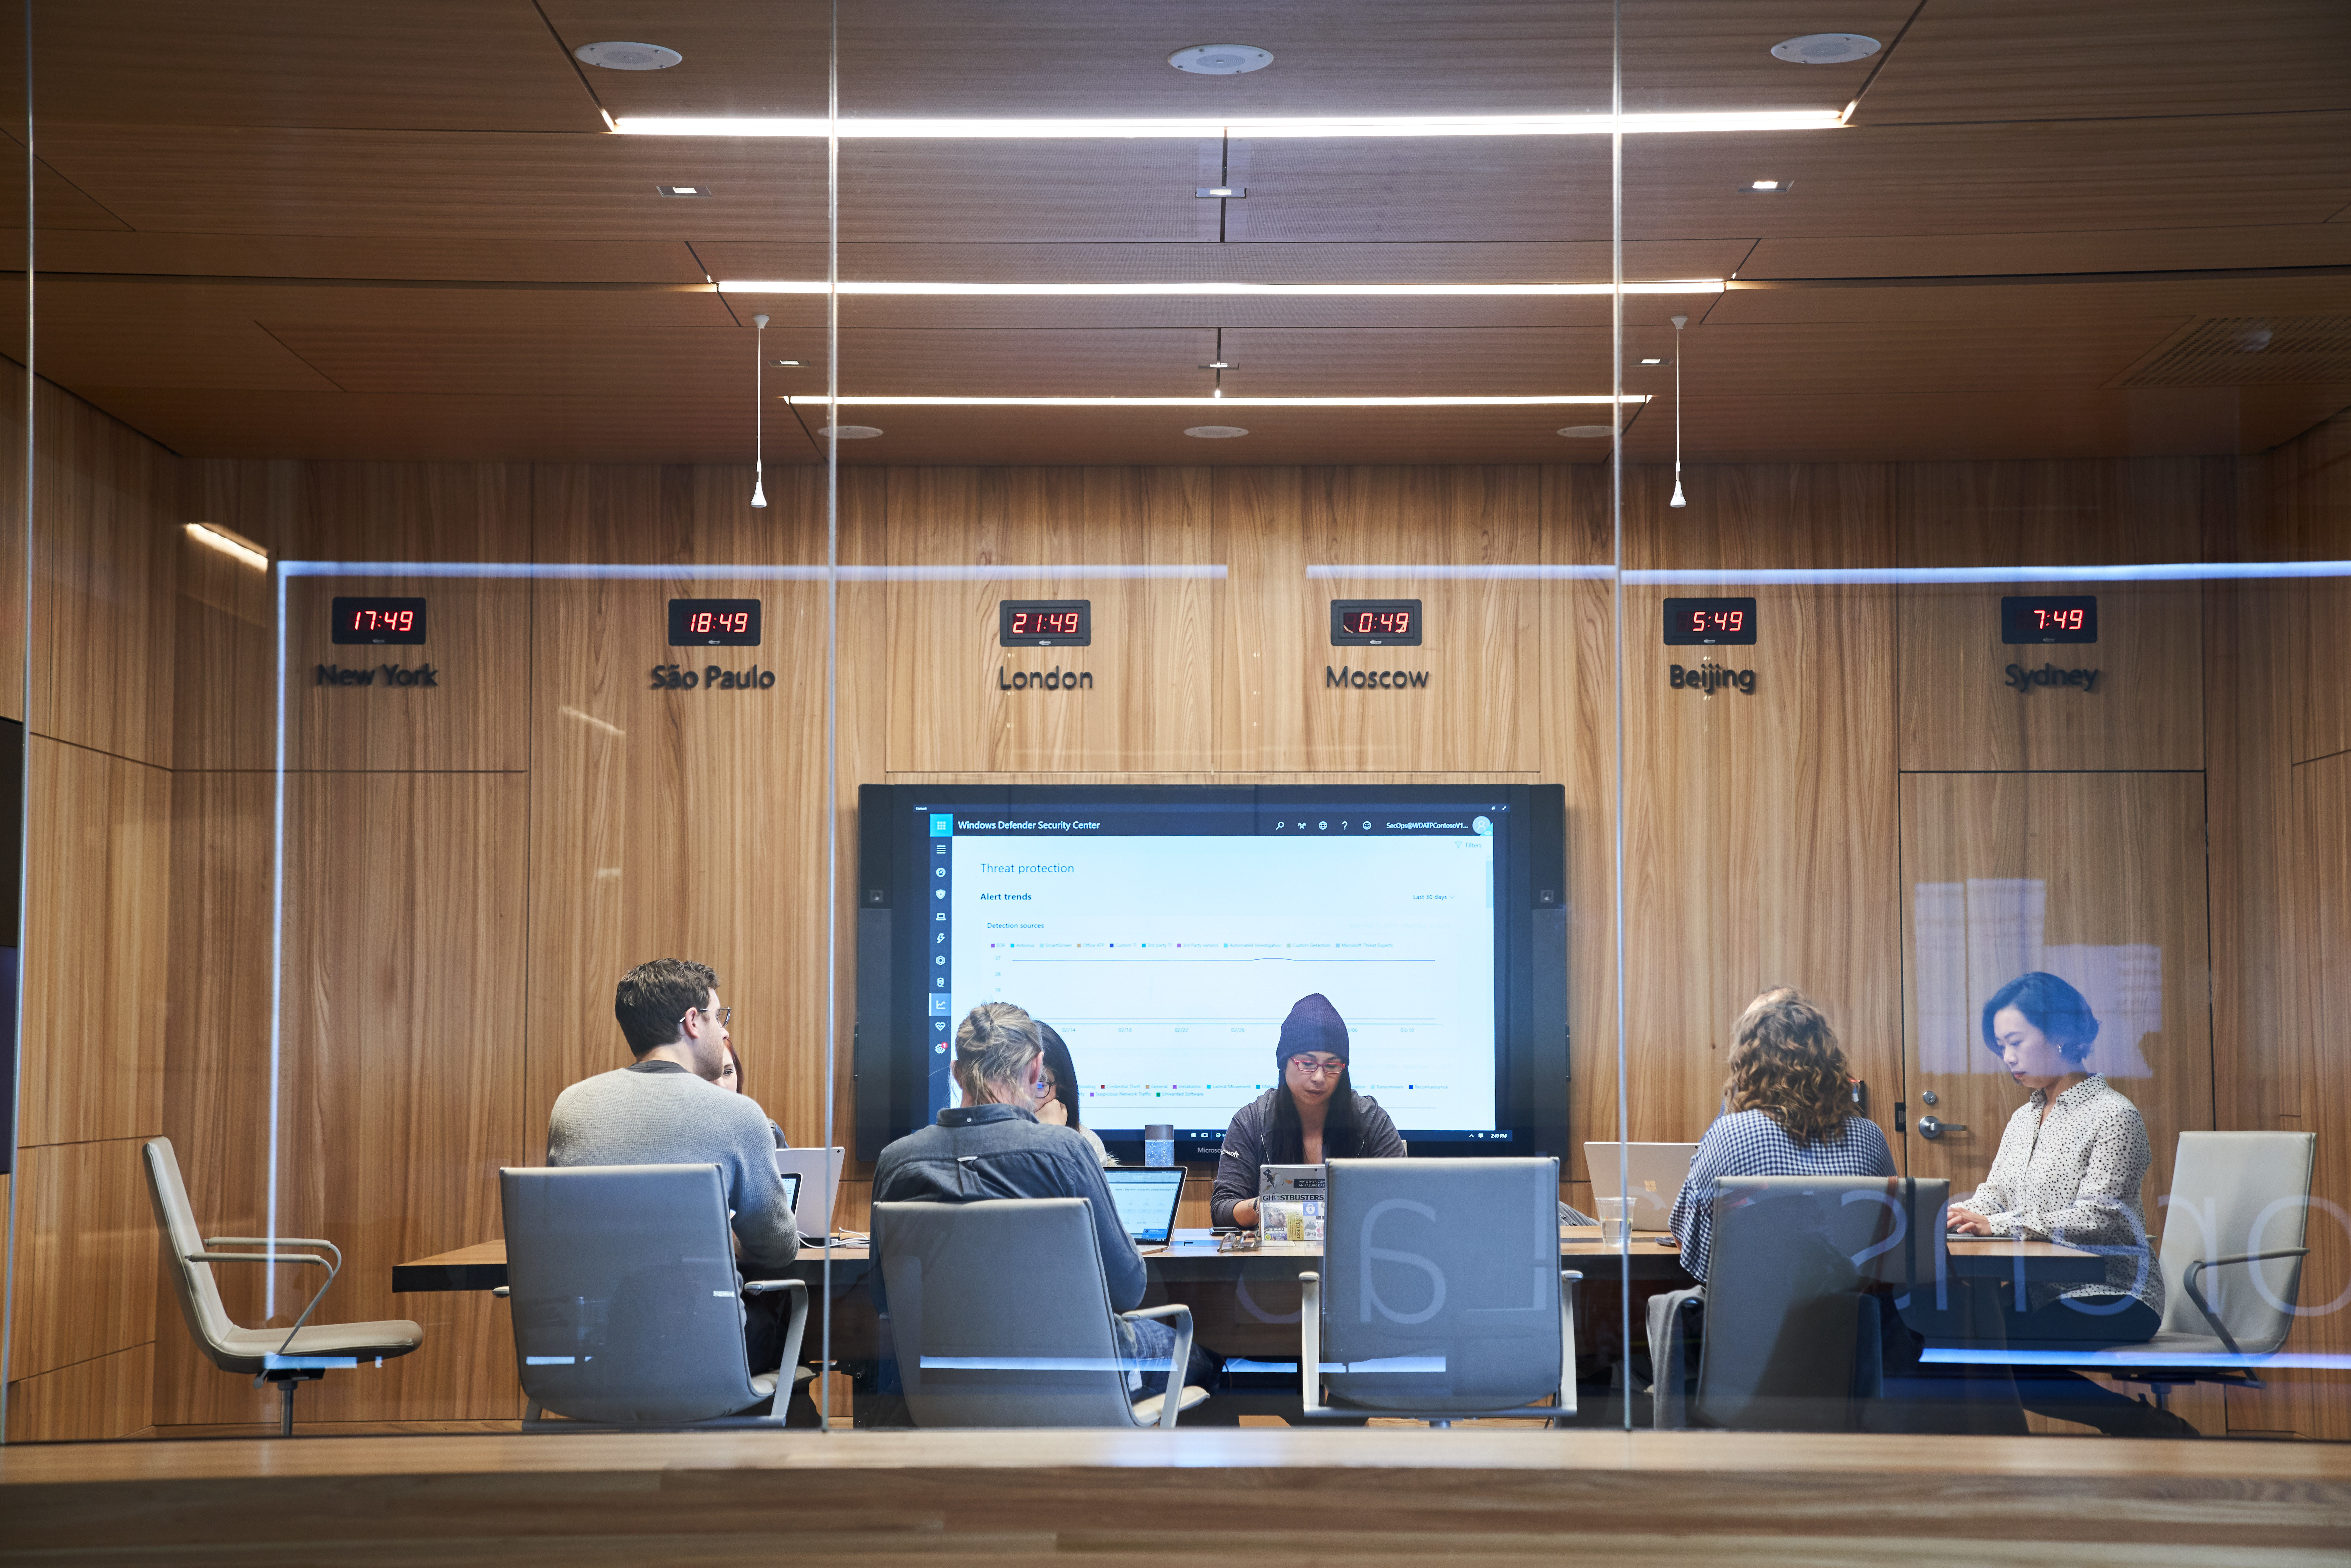 Looking into a conference room or board room meeting including people sitting around table in a room with international time clocks.